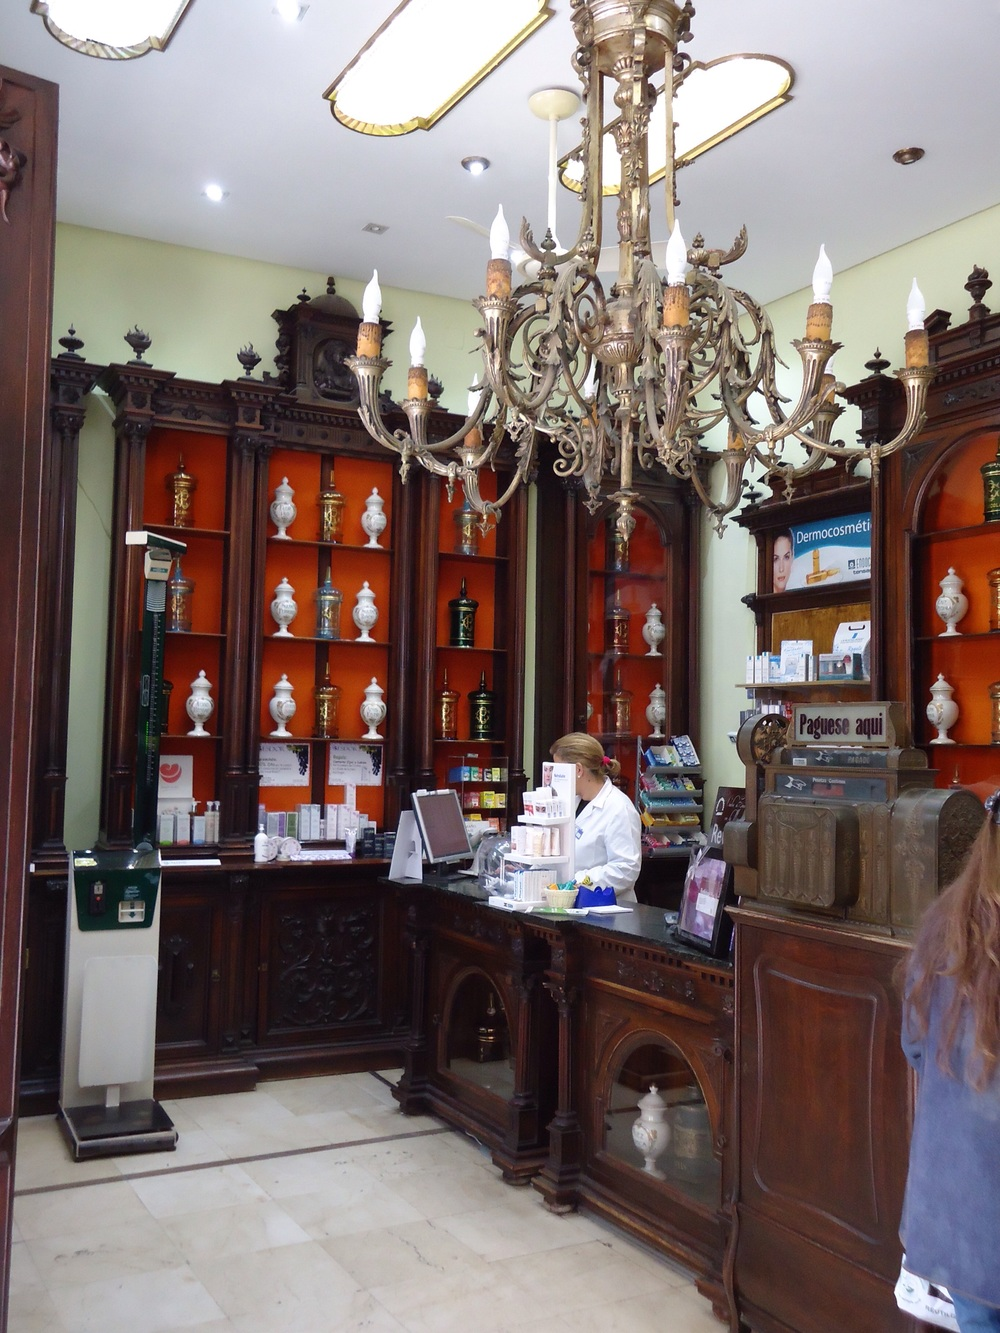 Original interior of a chemist shop!